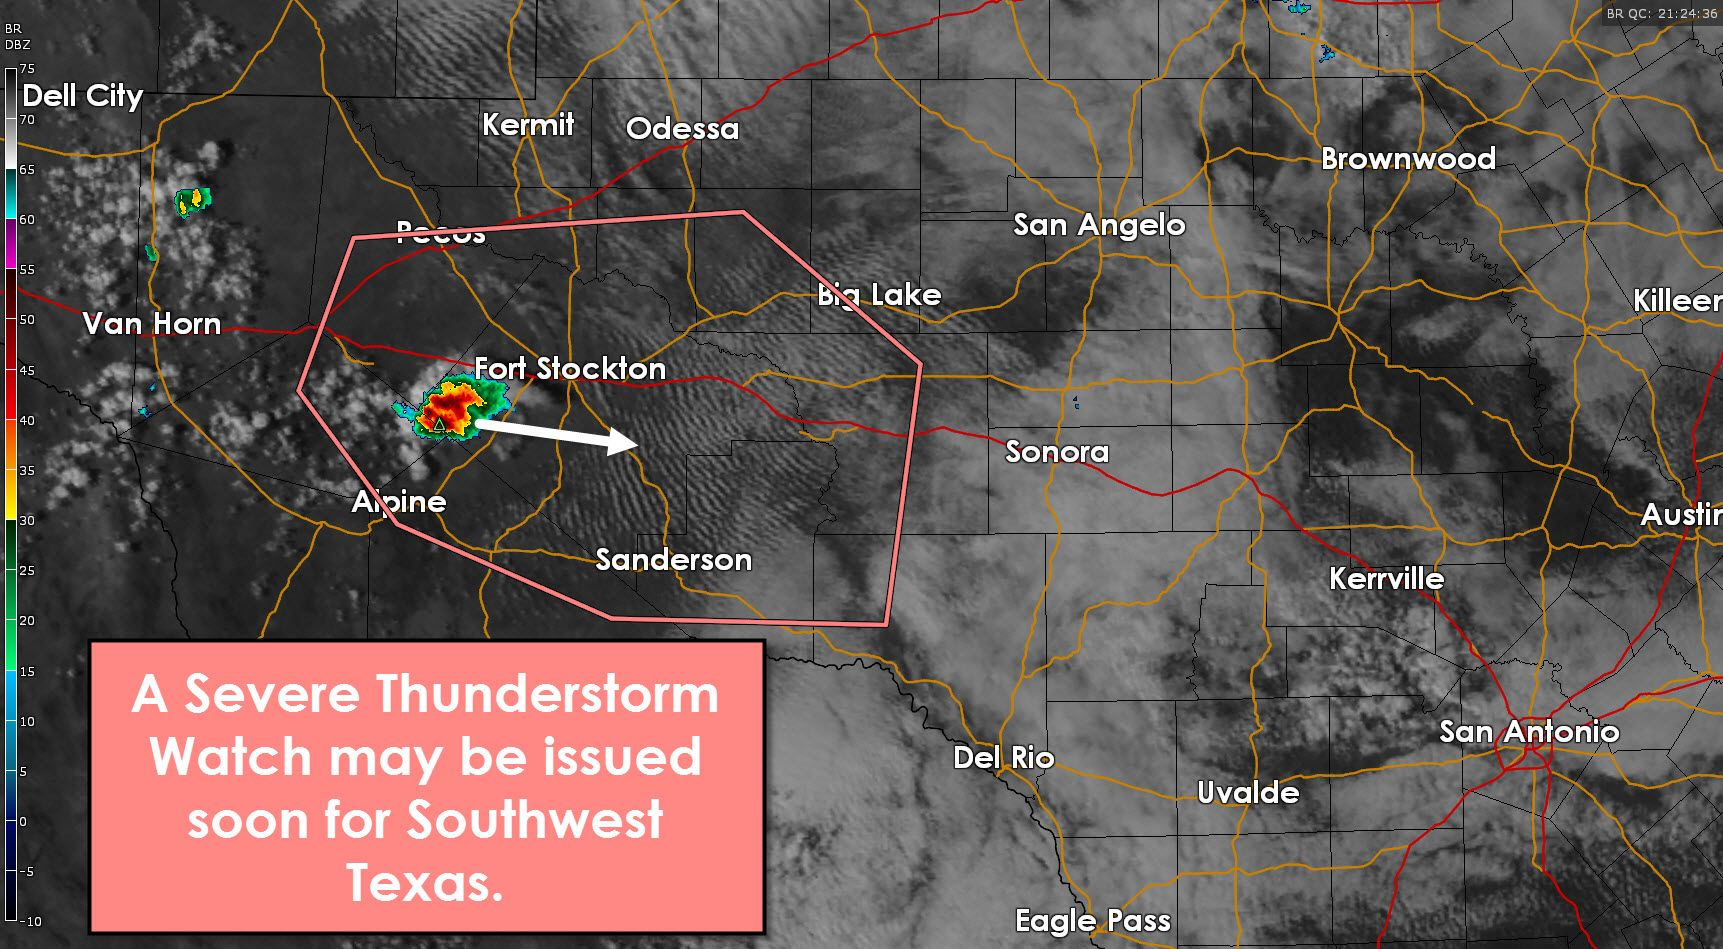 Severe Thunderstorm Watch Possible For Southwest Texas Texas Storm Thunderstorms Storm Prediction Center